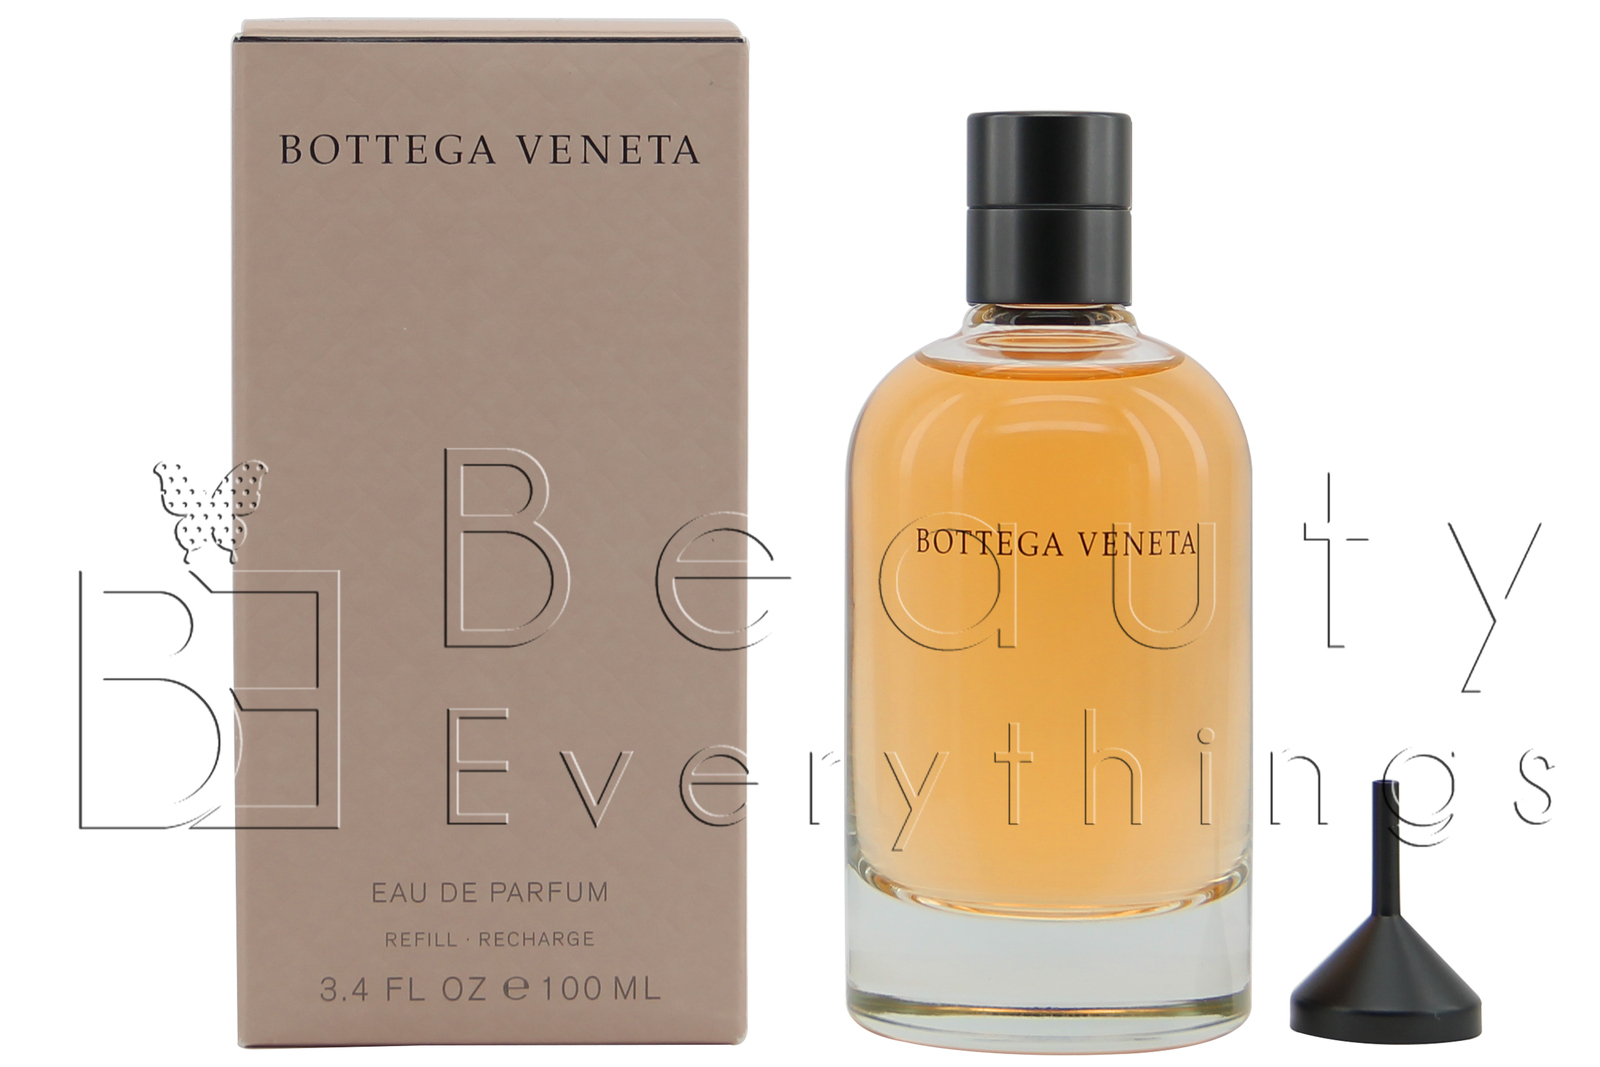 Primary image for Bottega Veneta 3.4oz / 100ml Eau de Parfum Refill /Recharge NIB Sealed For Women